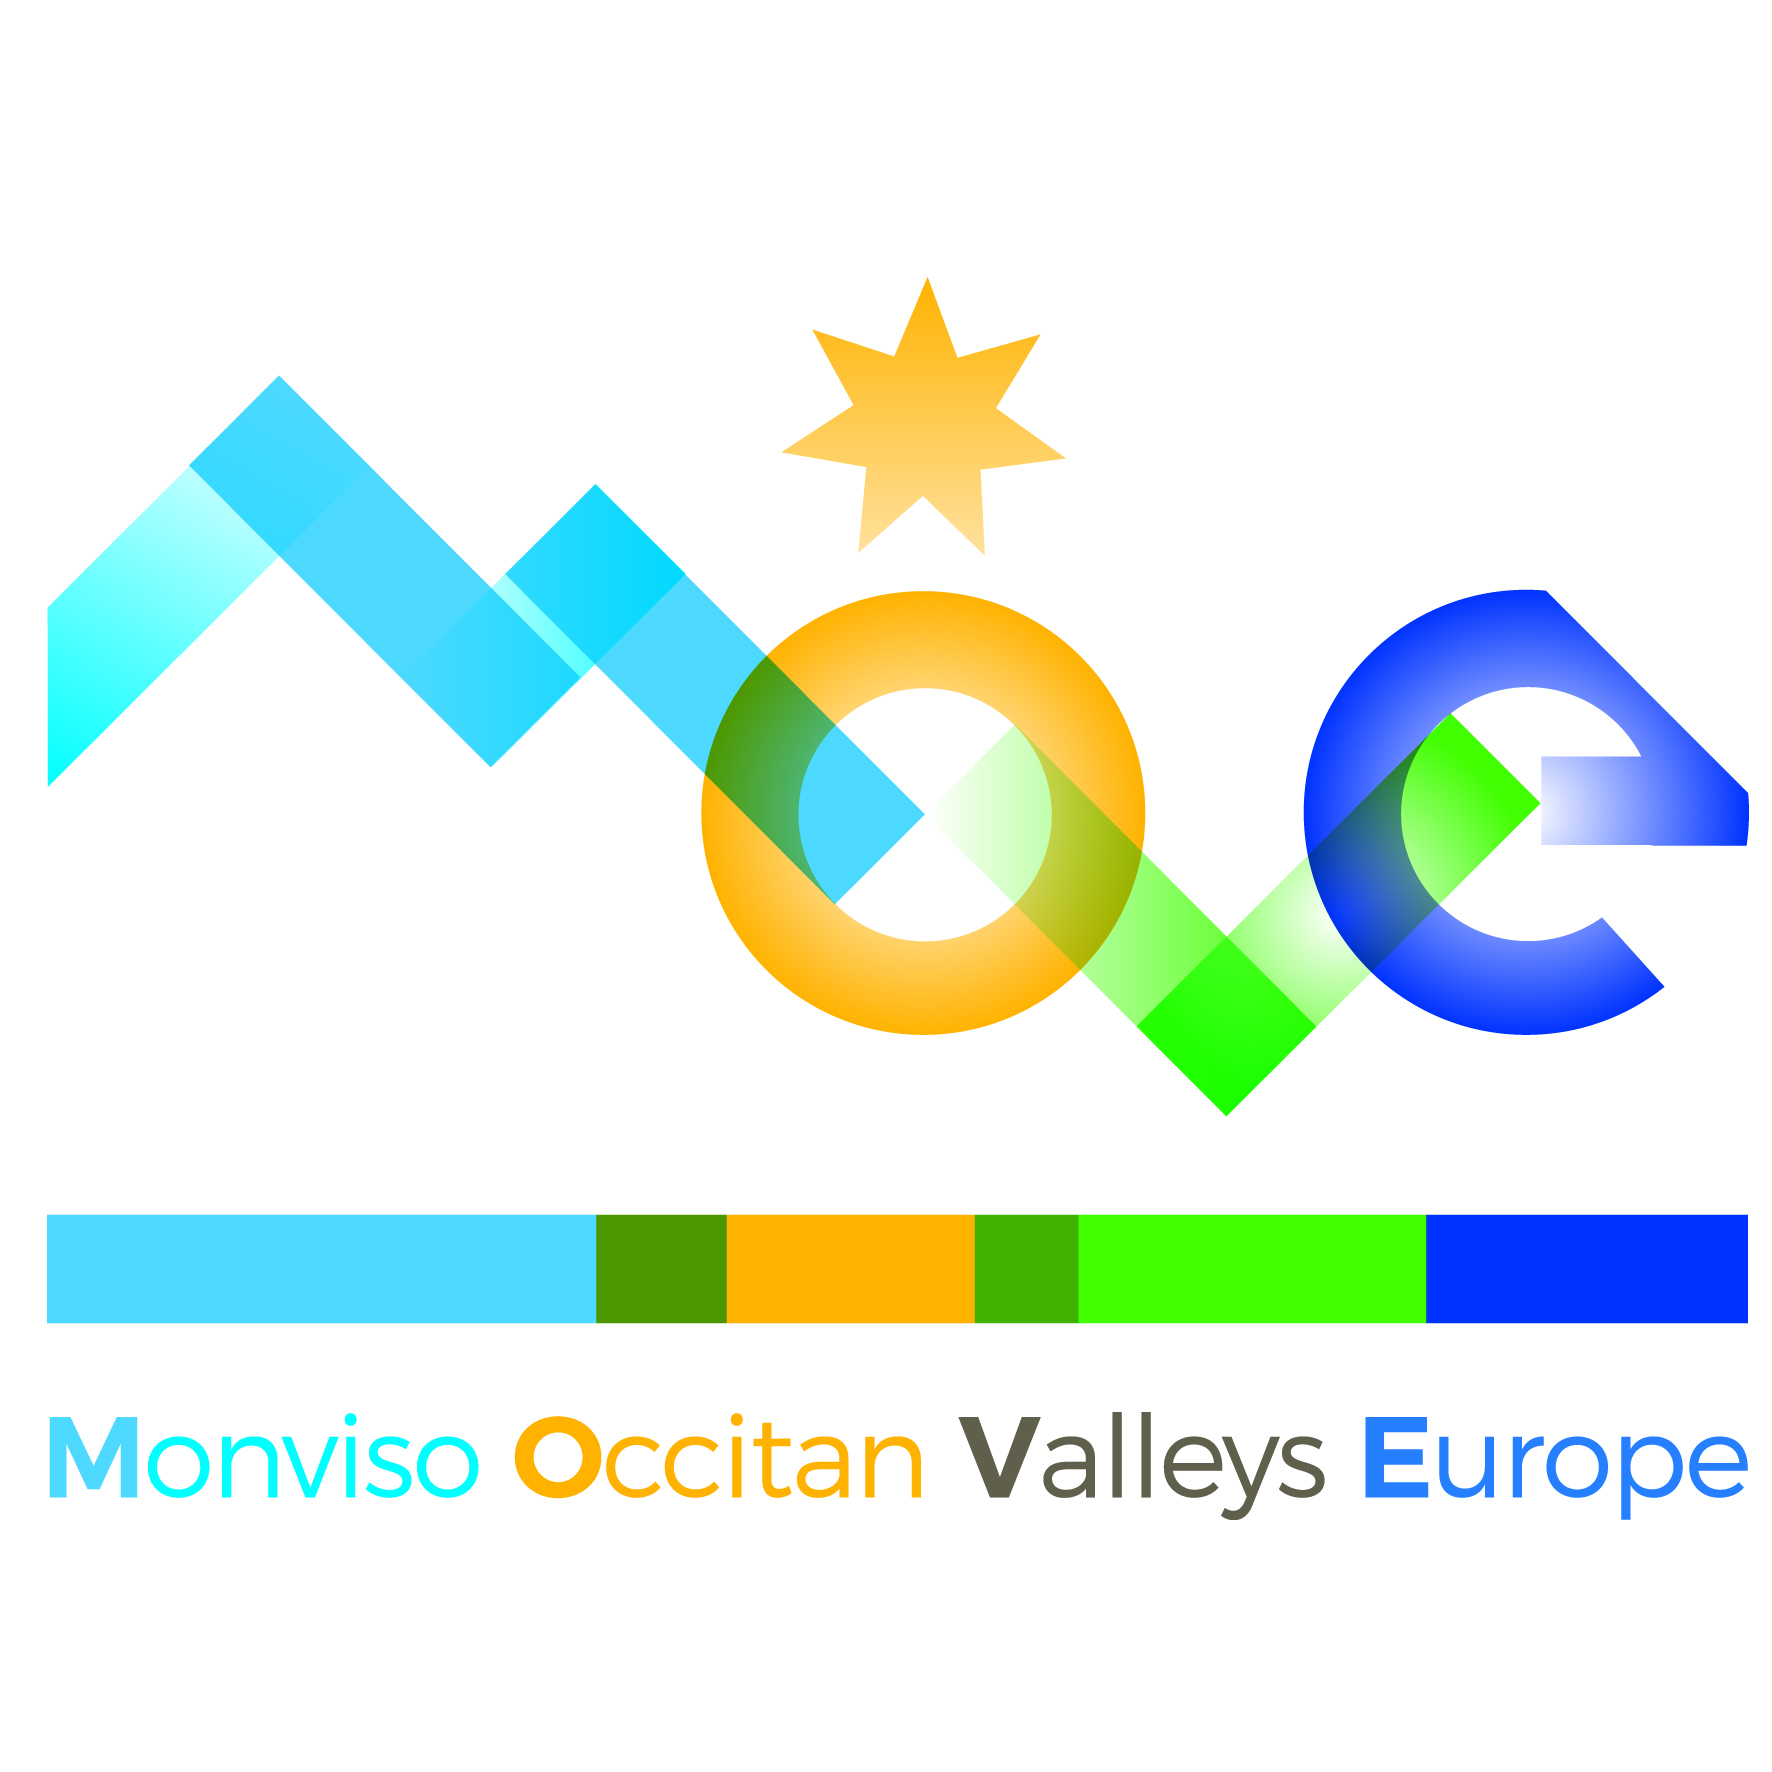 Monviso & Occitan Valleys of Europe